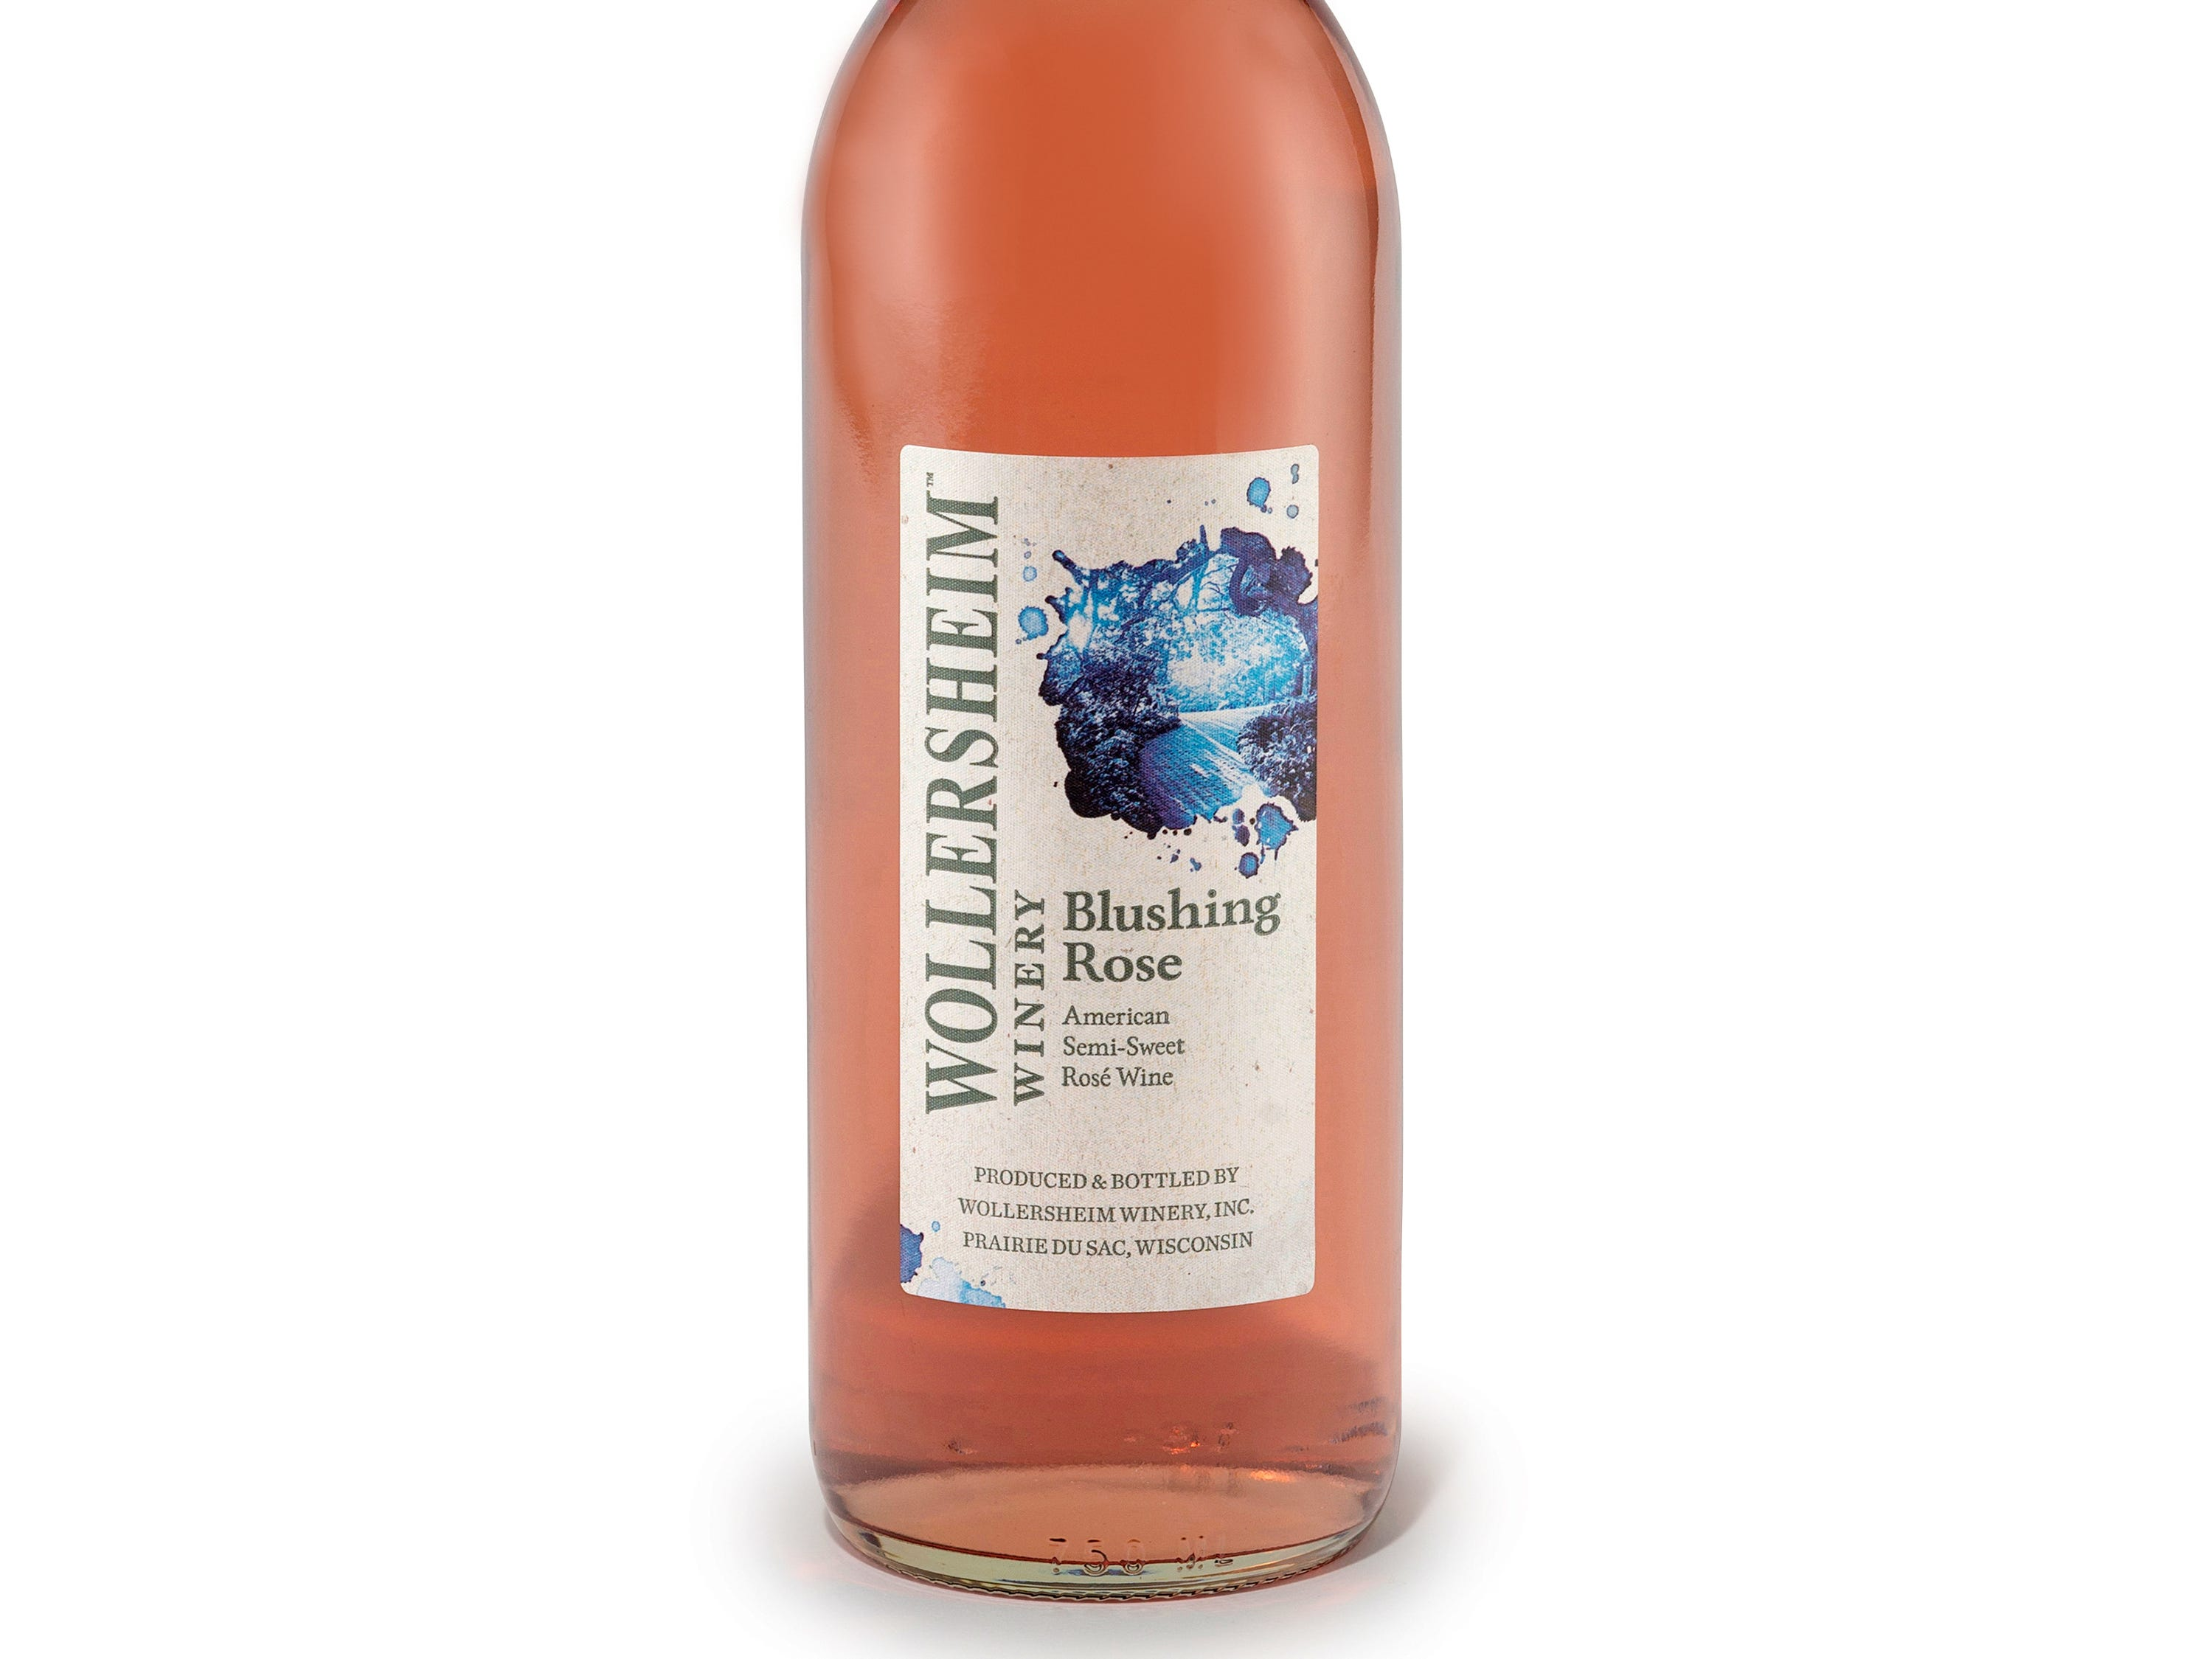 This perennial award winner from Wisconsin's Wollersheim Winery shows off tropical fruit flavor and a bright, clean finish.